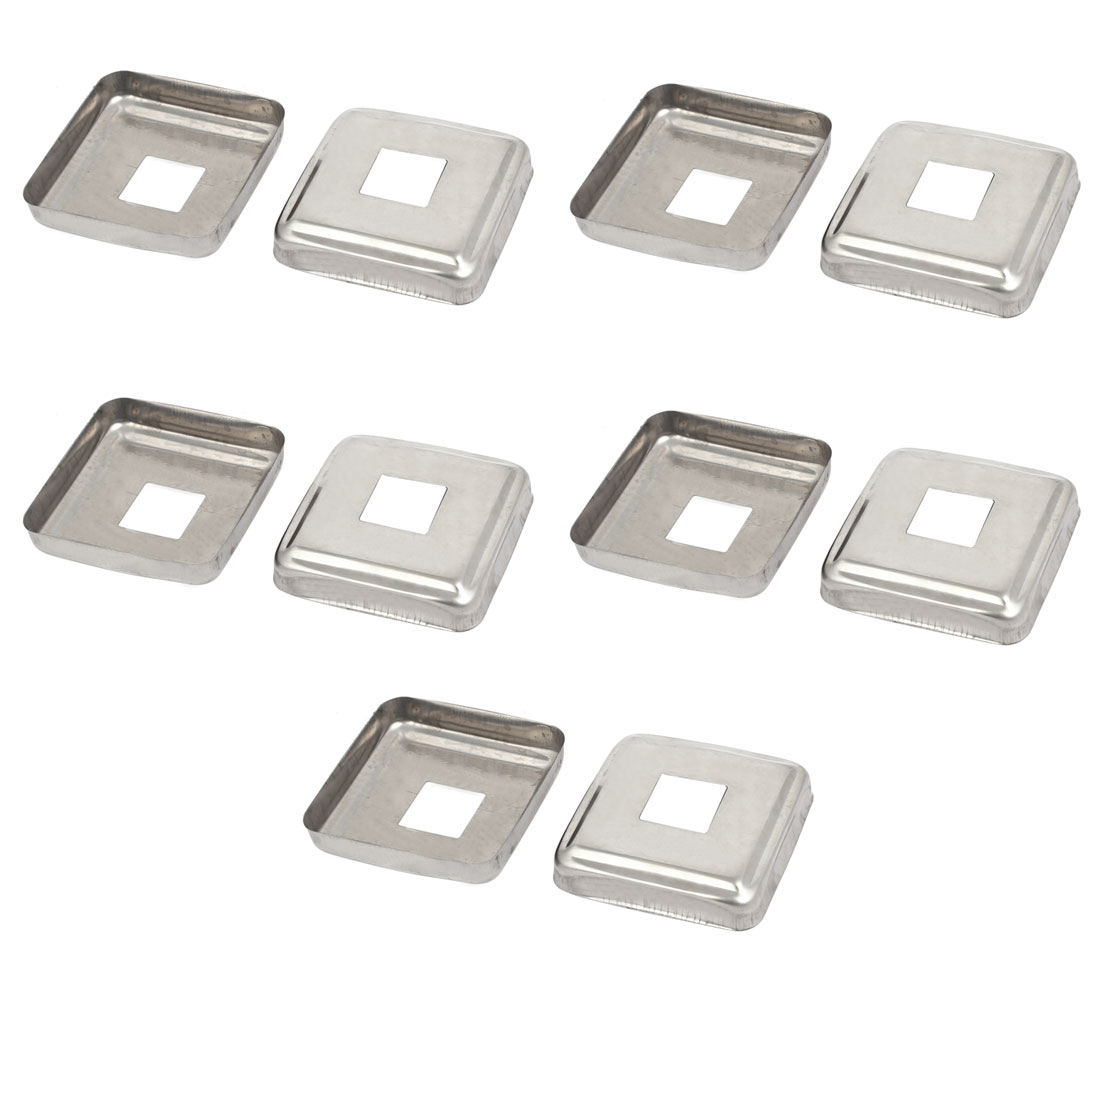 10pcs Ladder Handrail Hand Rail 22mm x 22mm Post Plate Cover 304 Stainless Steel